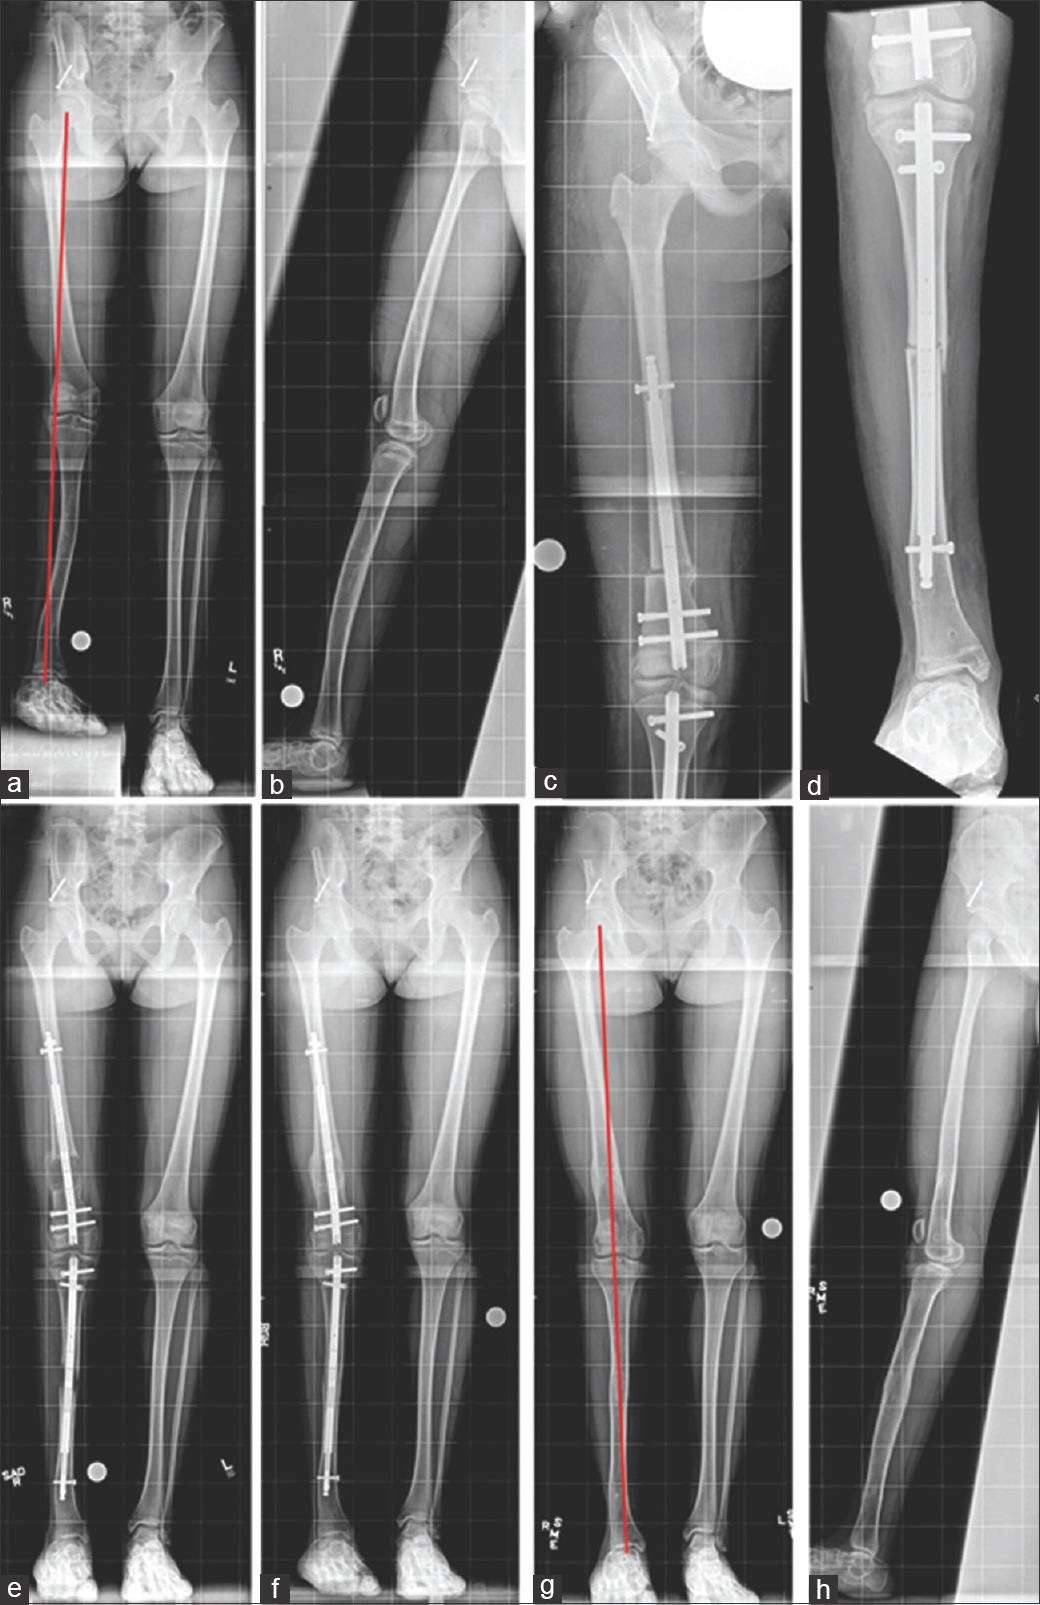 Figure 4: (a-h) 14-year-old female with right-side congenital femoral deficiency/fibular hemimelia (a and b) 3.5 cm femoral discrepancy, 7° femoral valgus, with 6 cm right tibial discrepancy (9° valgus, 3° procurvatum, 10° ITT) (c and d) Immediate postacute deformity correction and PRECICE™ nail insertion femur and tibia. (e) After complete distraction. (f) Consolidation of regenerate. (g and h) After nail removals. Length and limb alignment achieved (used with permission)